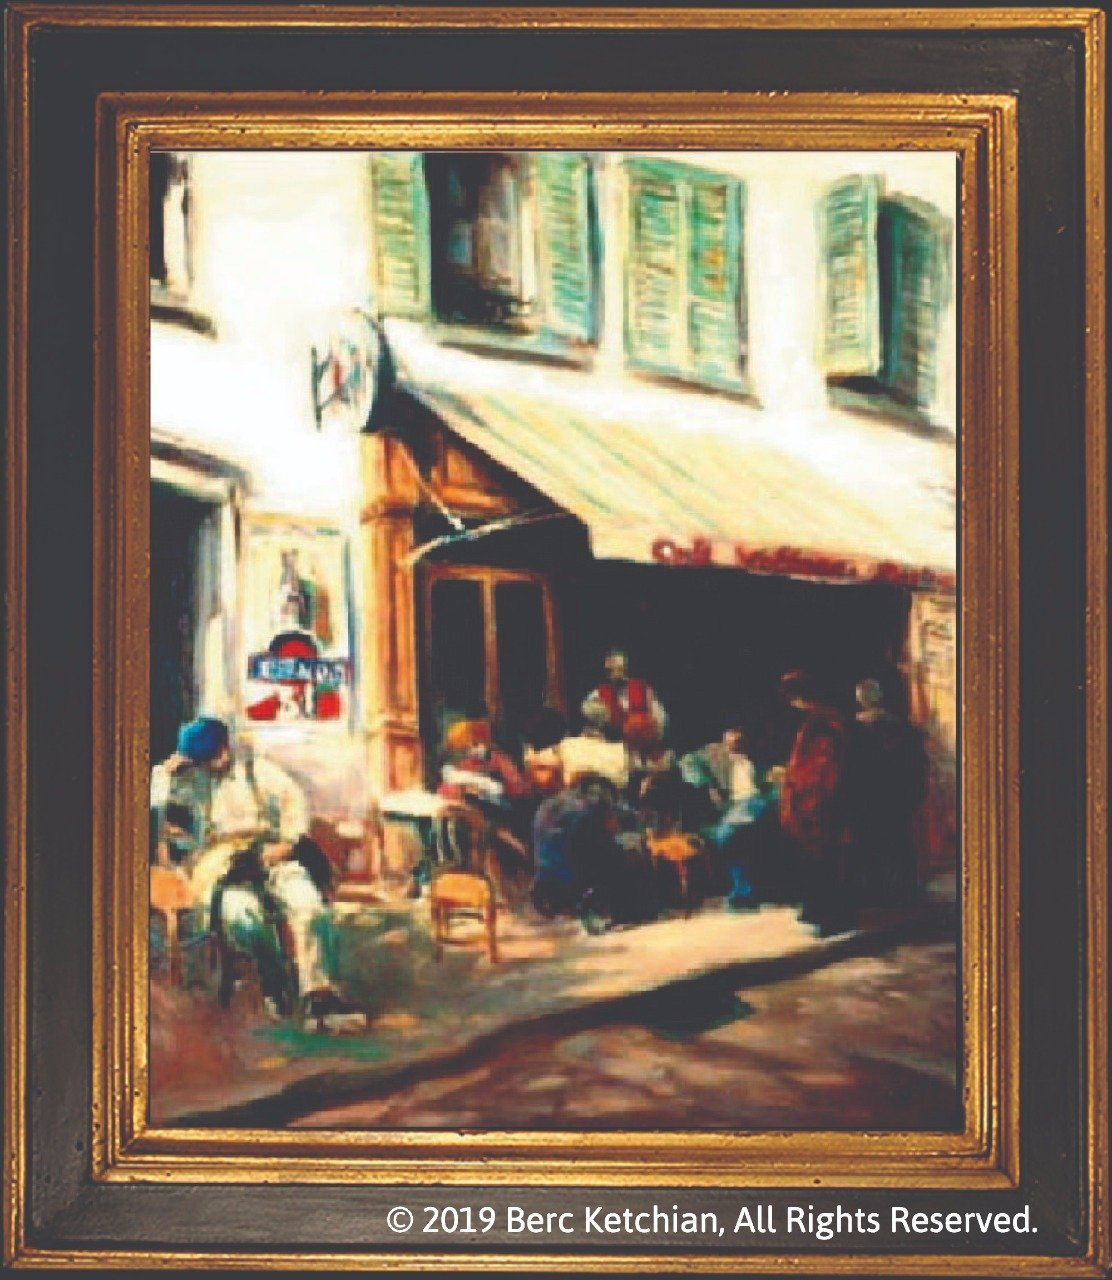 CAFE_VOLTAIRE_OIL_ON_CAN_1112x1280.jpg